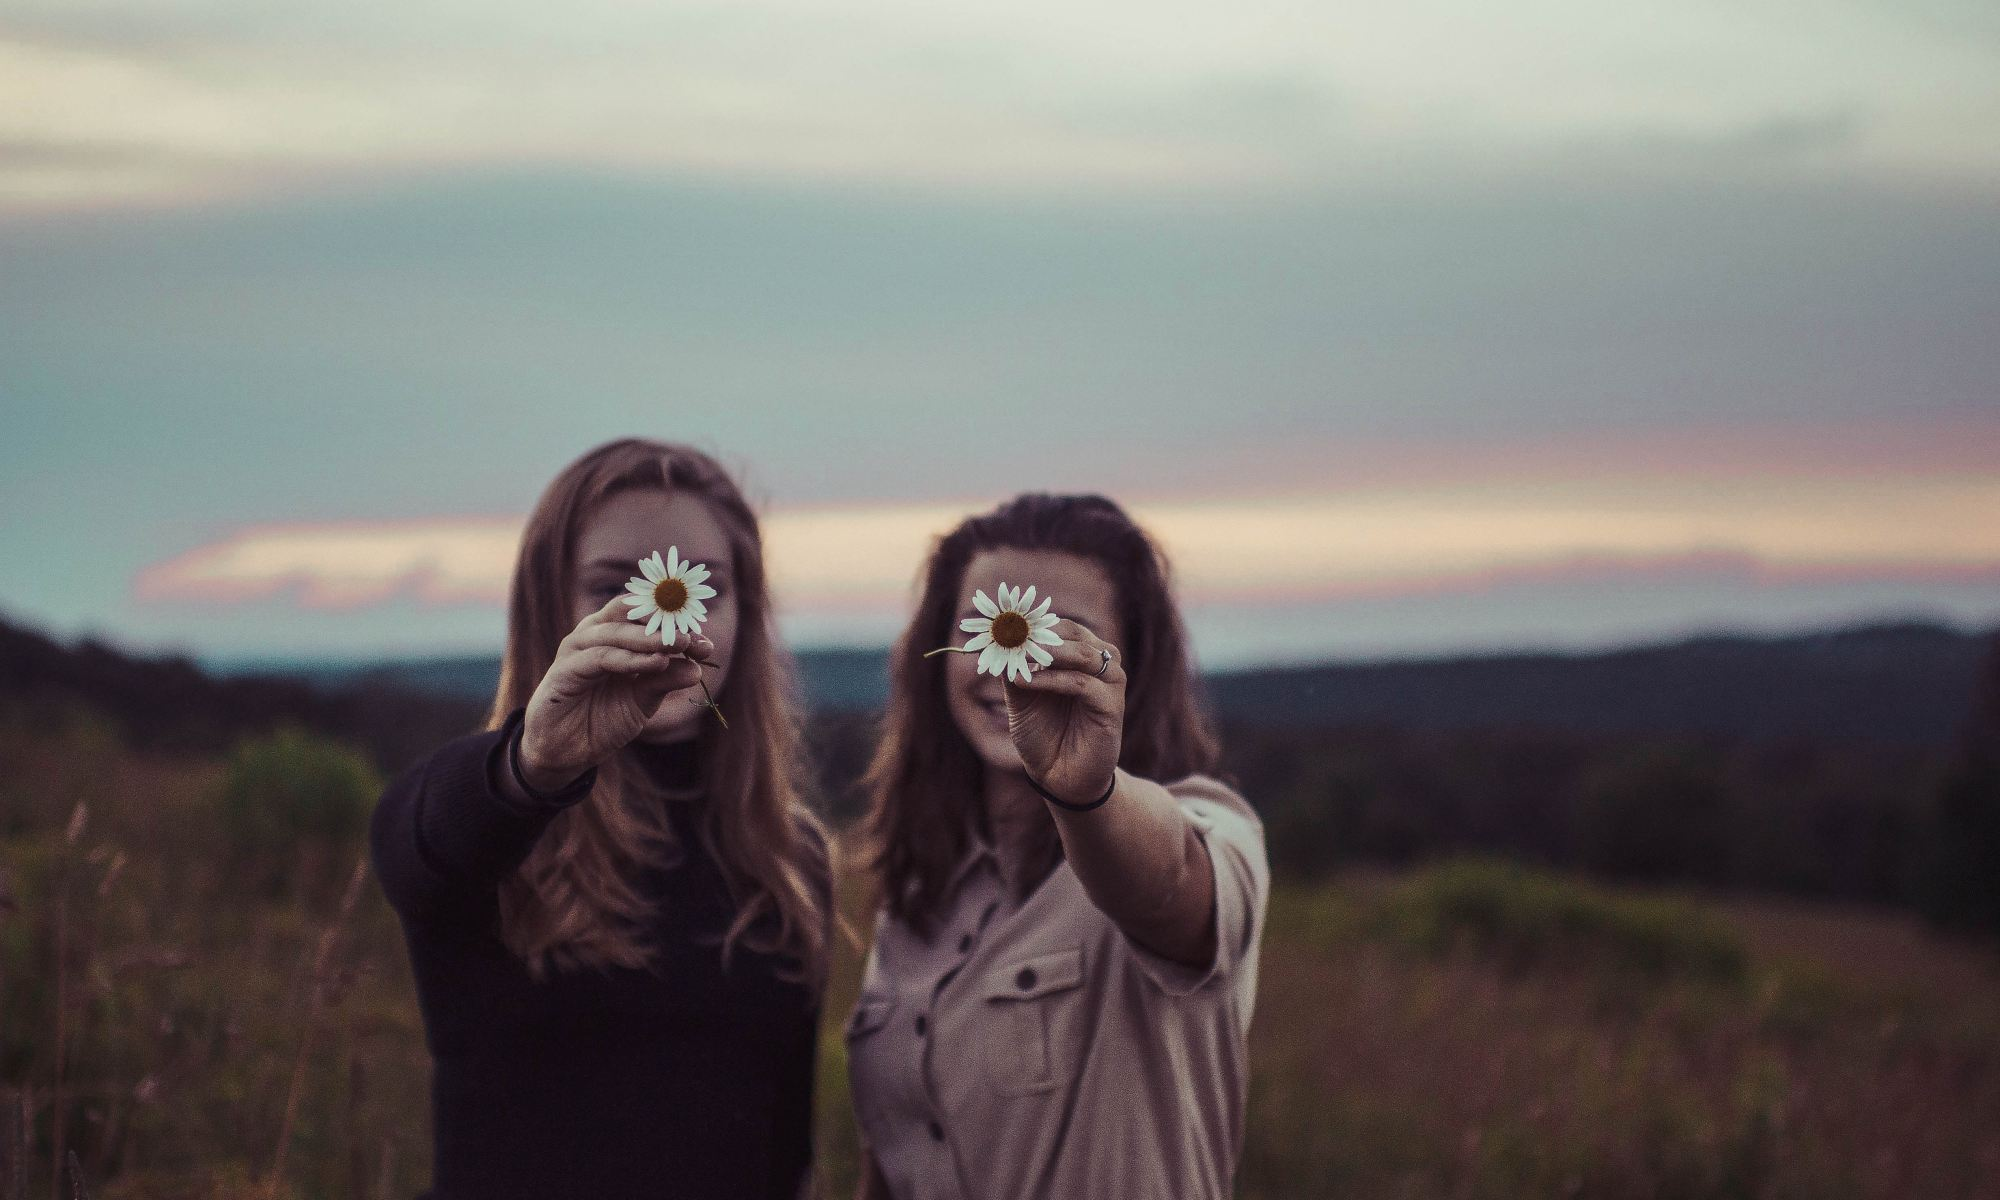 Two female friends holding flowers and reuniting in nature